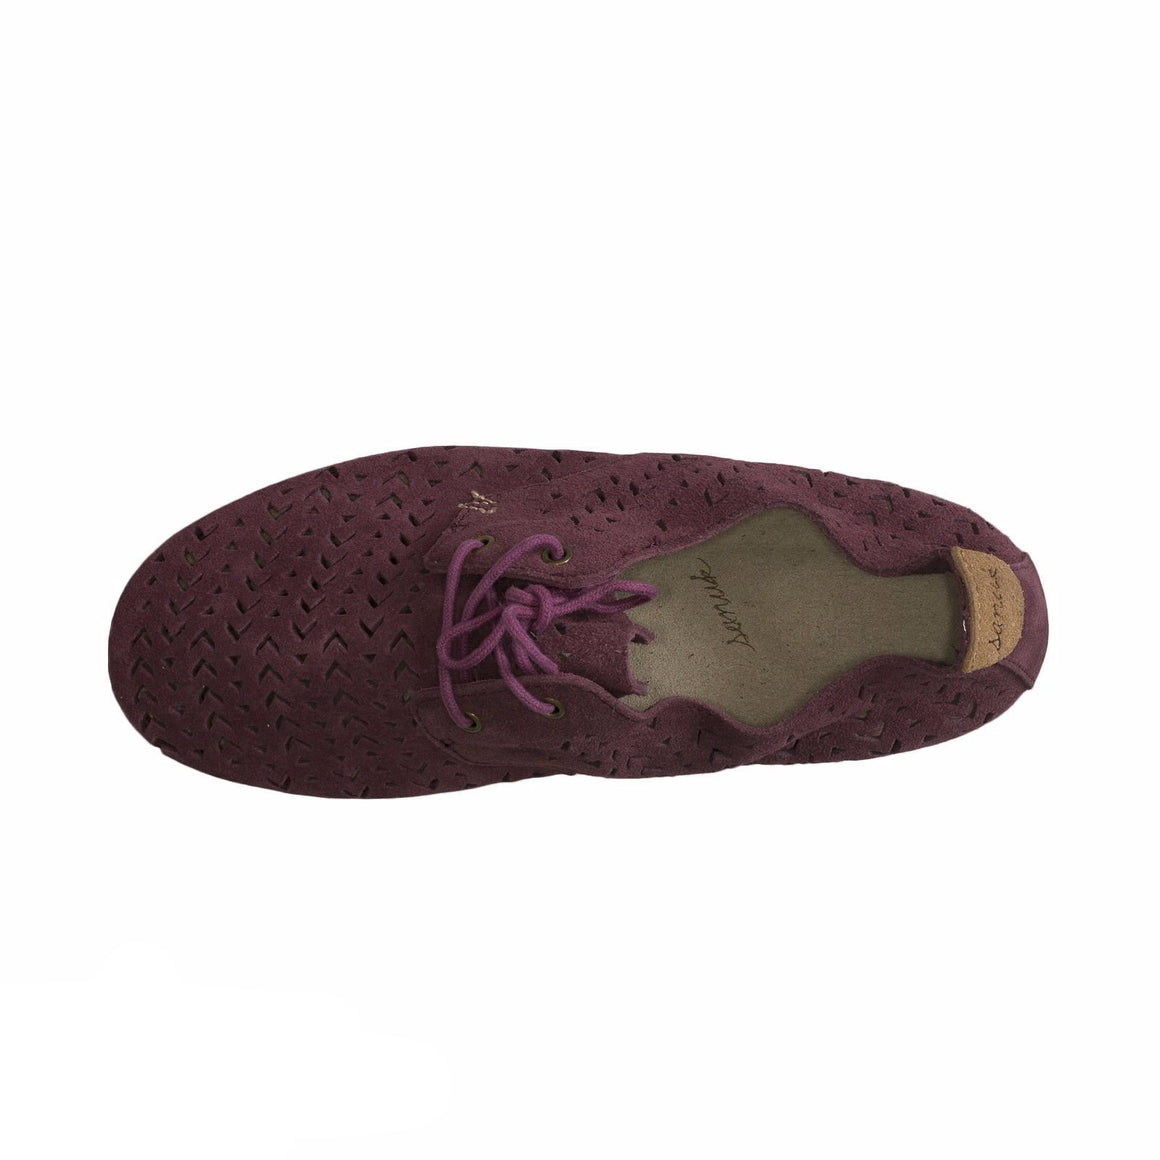 Sanuk Bianca Perf Dark Boysenberry Shoes